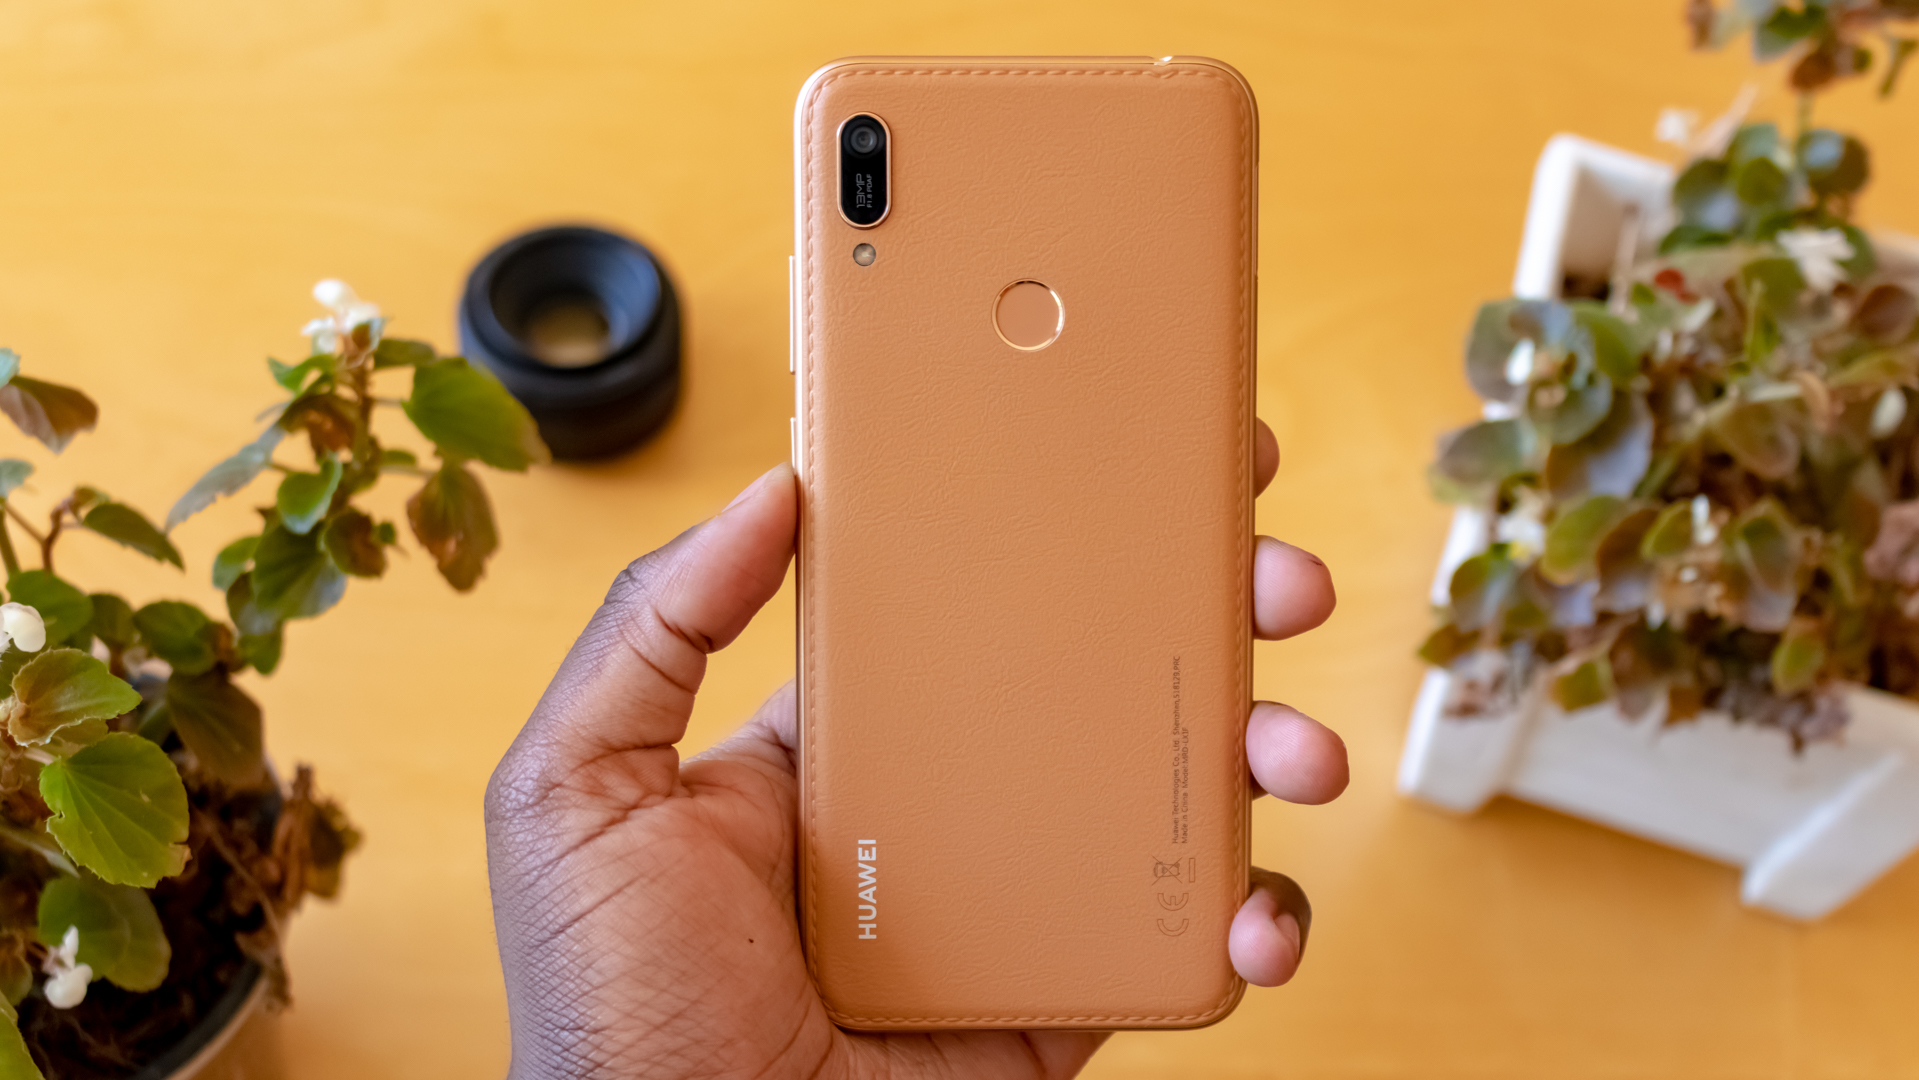 Huawei Y6 Prime 2019 Review: Great Battery Life in an Attractive Package